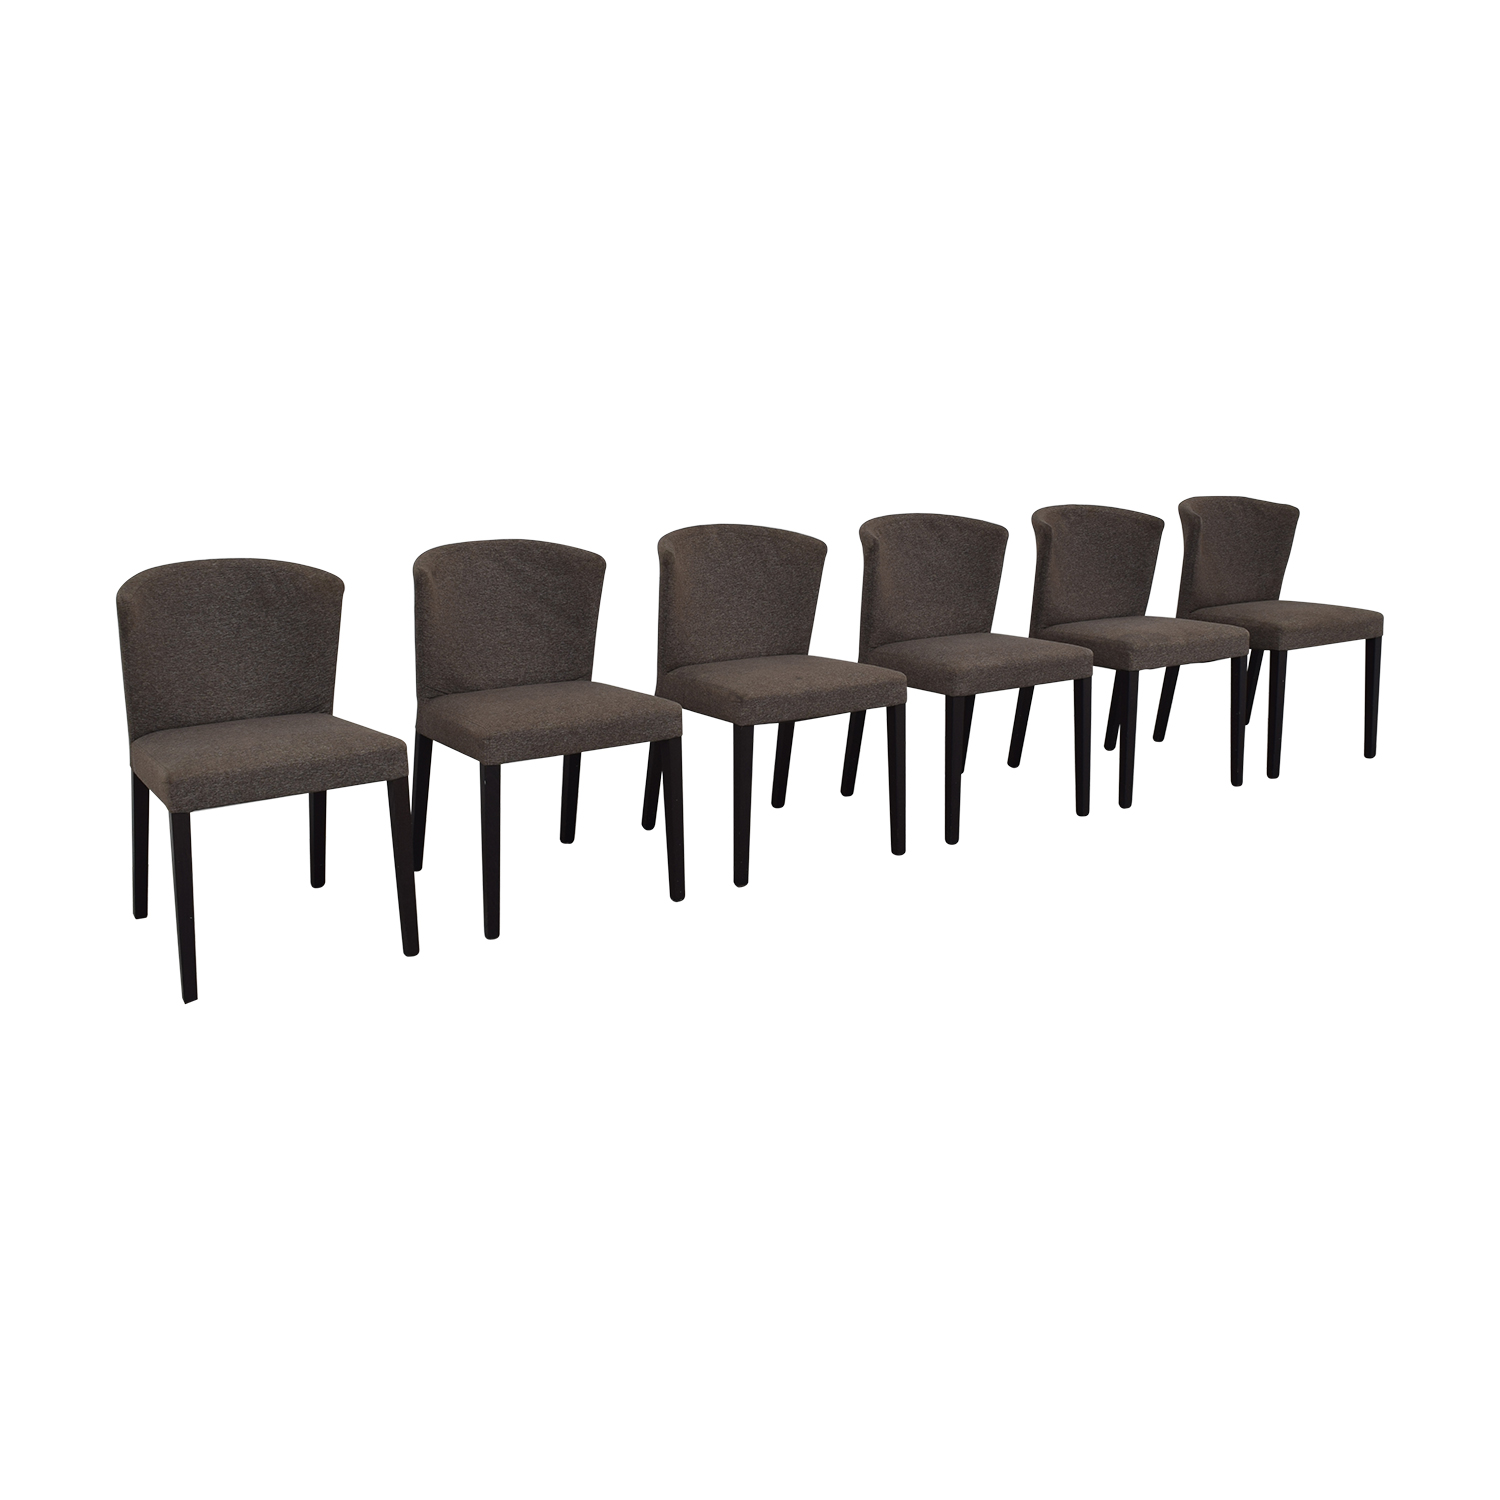 Heals of London Habitat Grey Upholstered Dining Chairs / Chairs